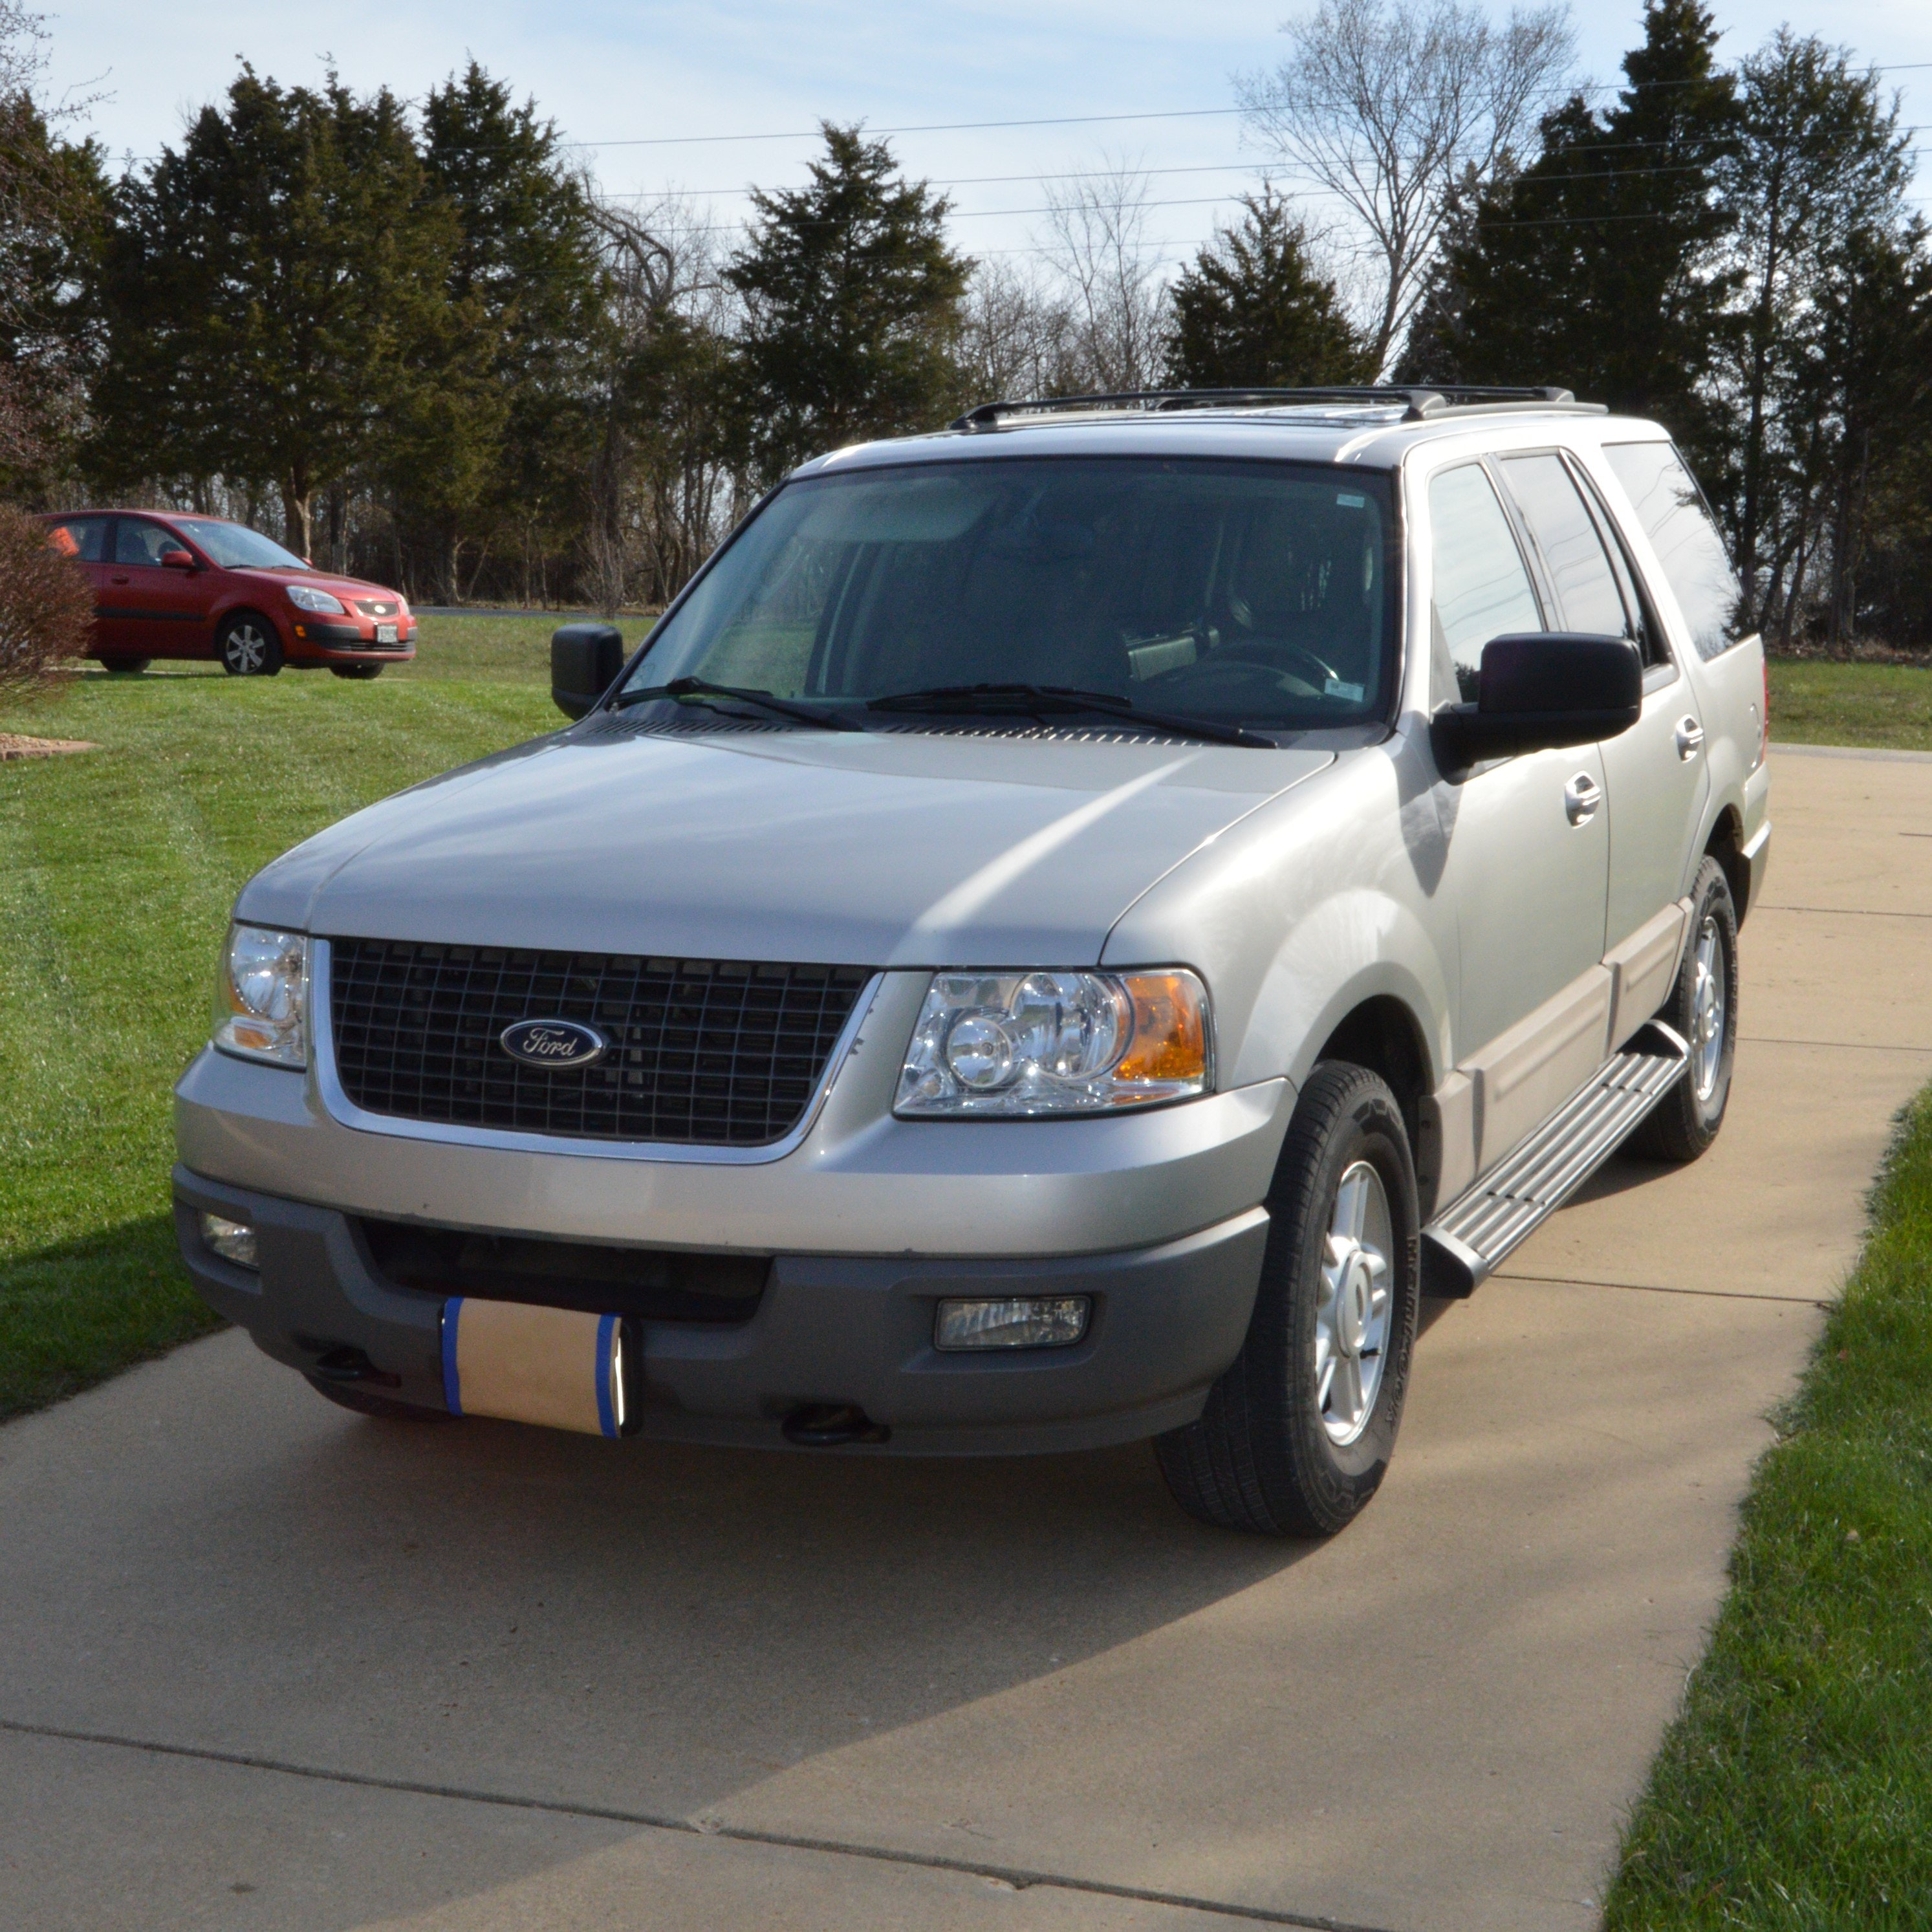 2003 Ford Expedition XLT Premium 4.6L 4WD Sport Utility Vehicle